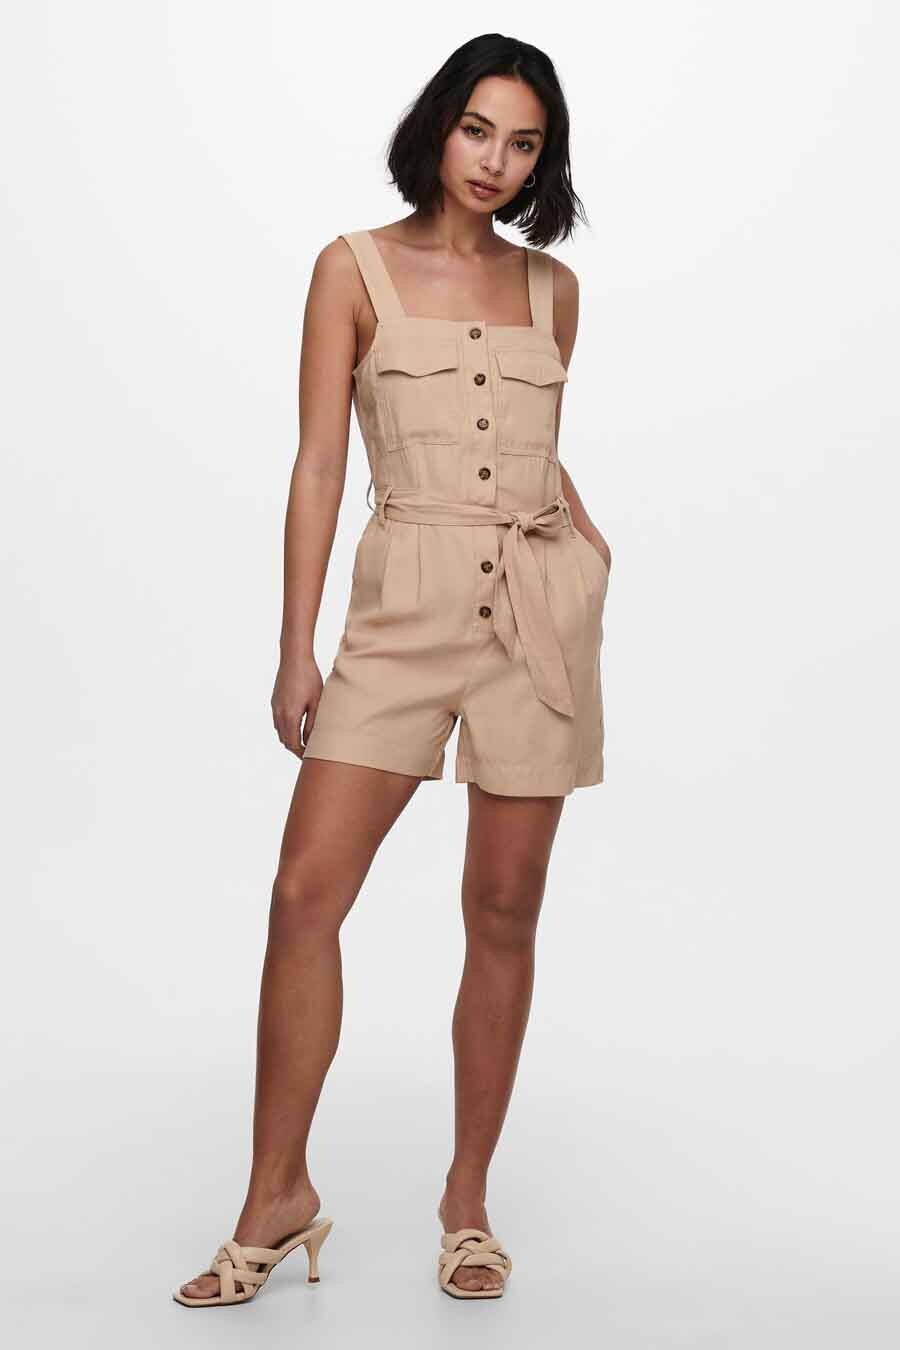 ONLY® Playsuit, Beige, Dames, Maat: M/S